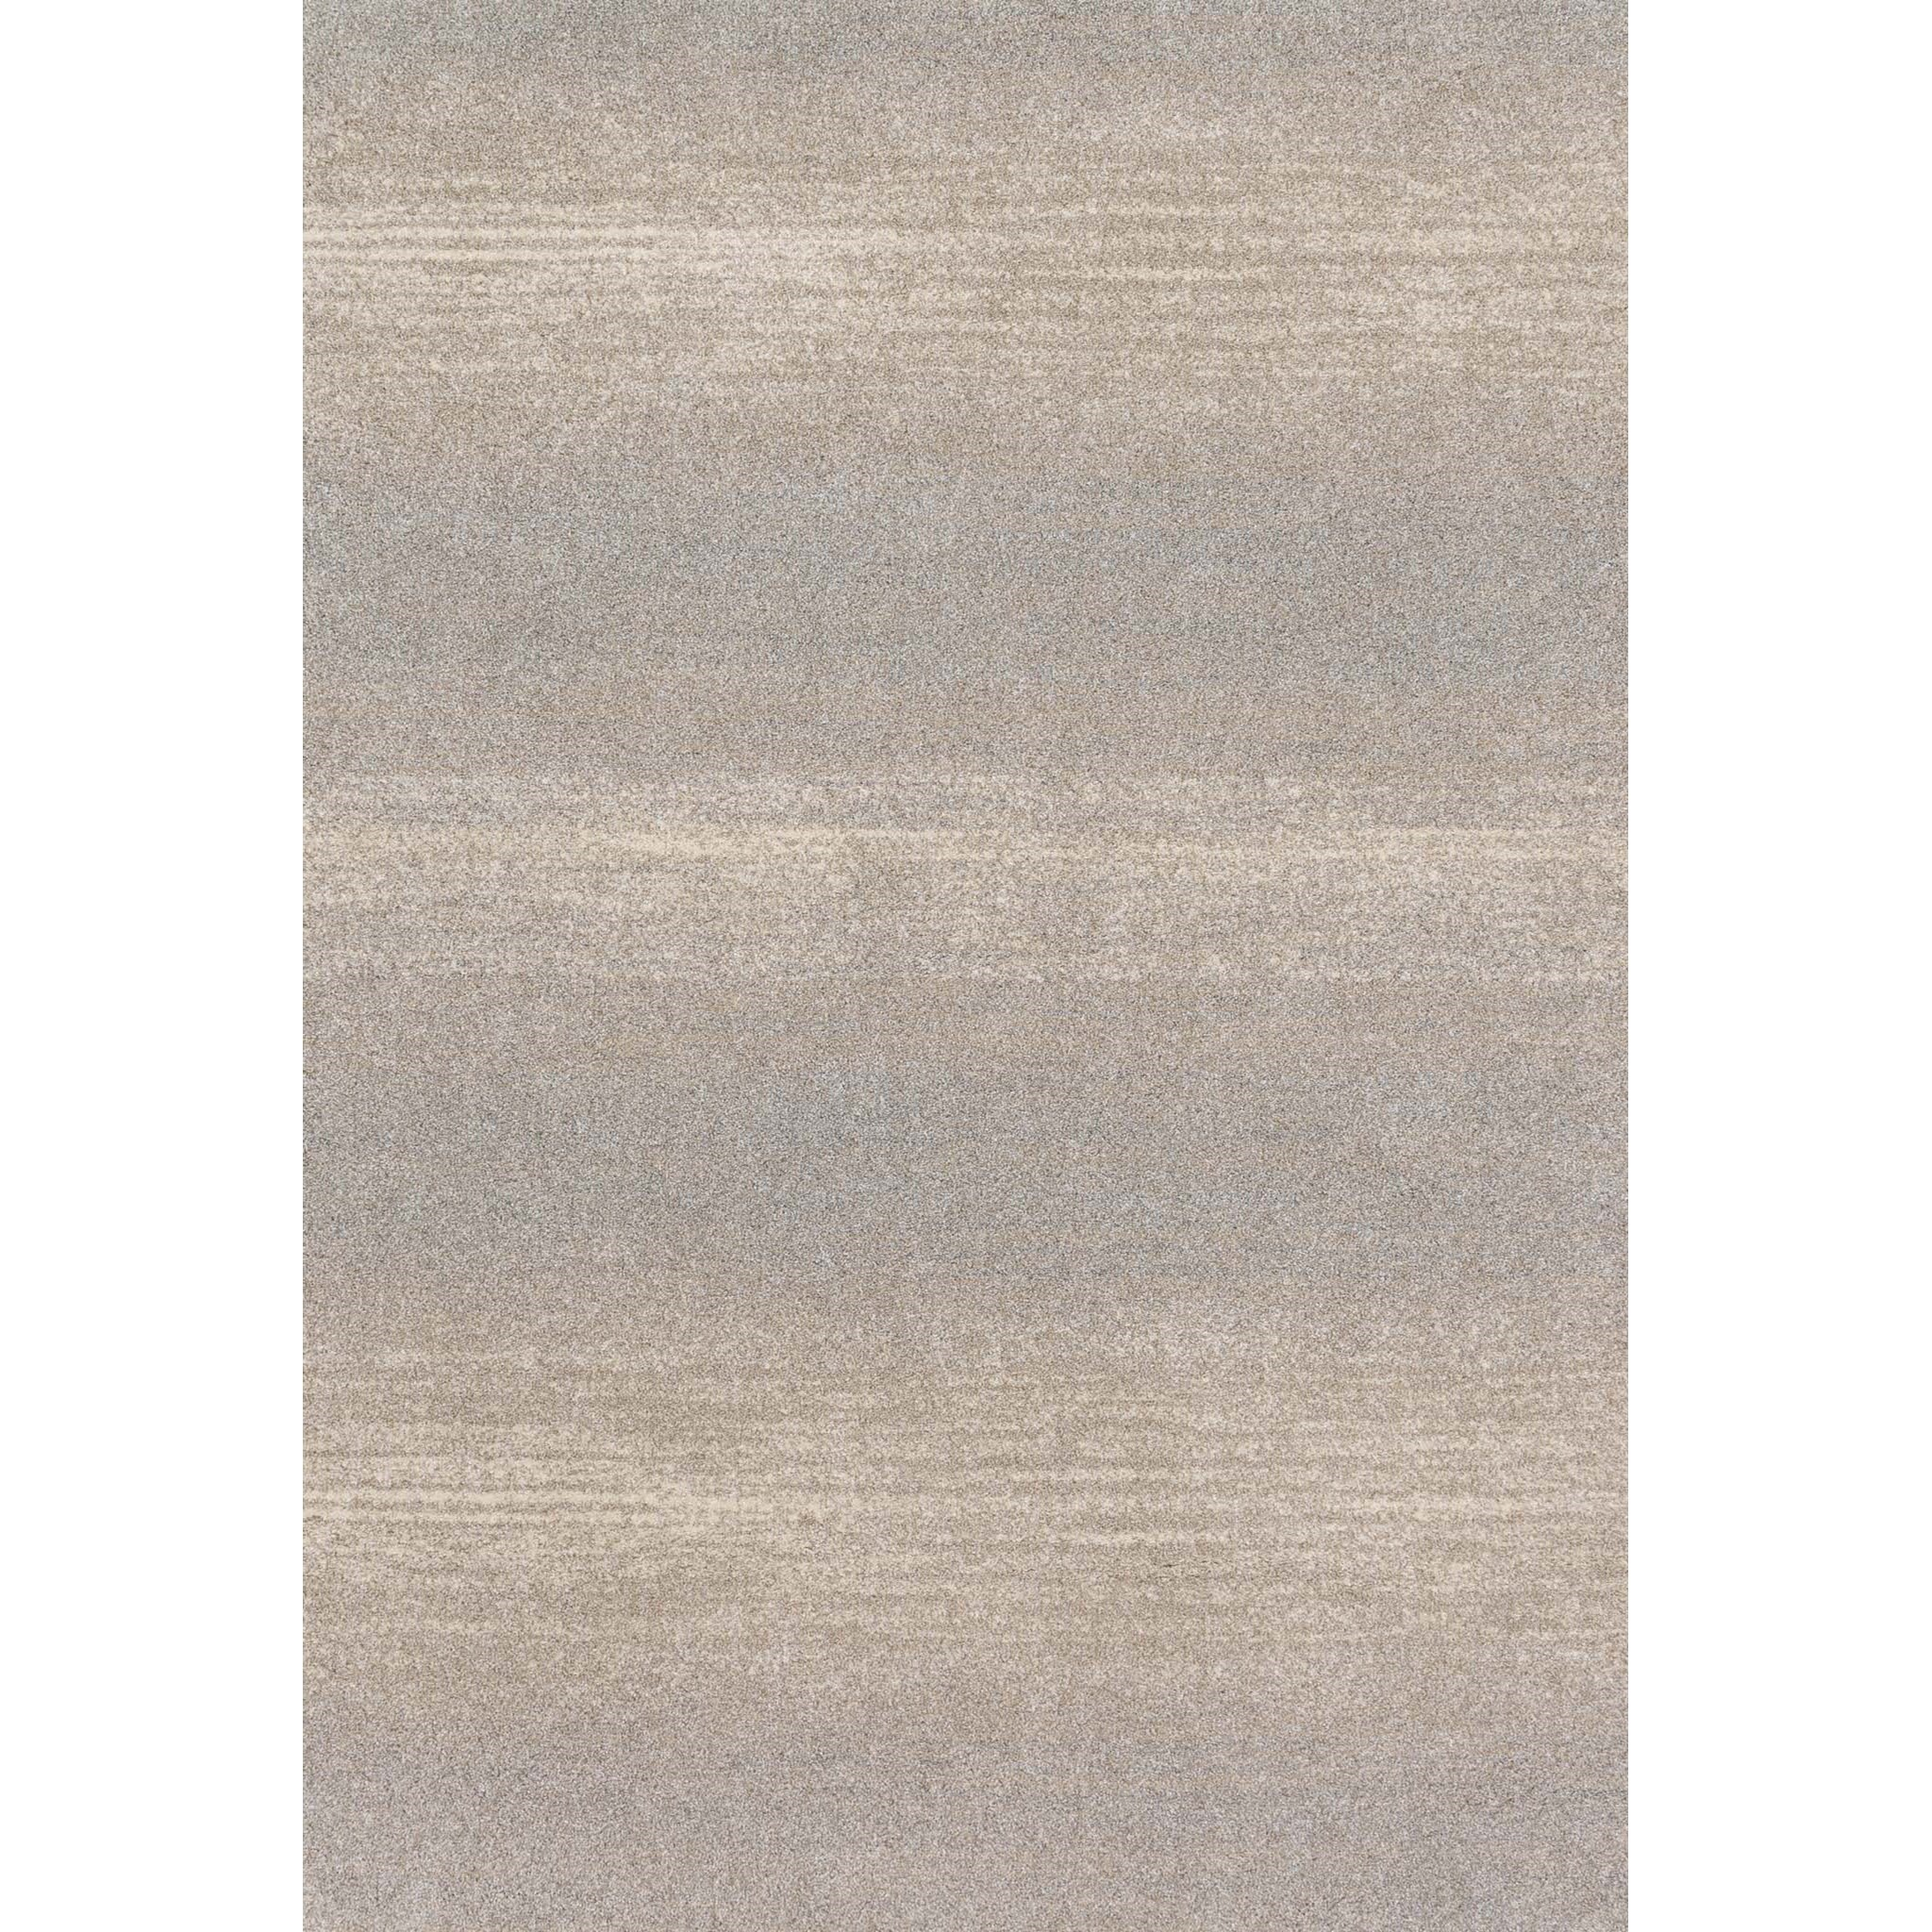 "Emory 7'-7"" X 10'-6"" Area Rug by Loloi Rugs at Darvin Furniture"